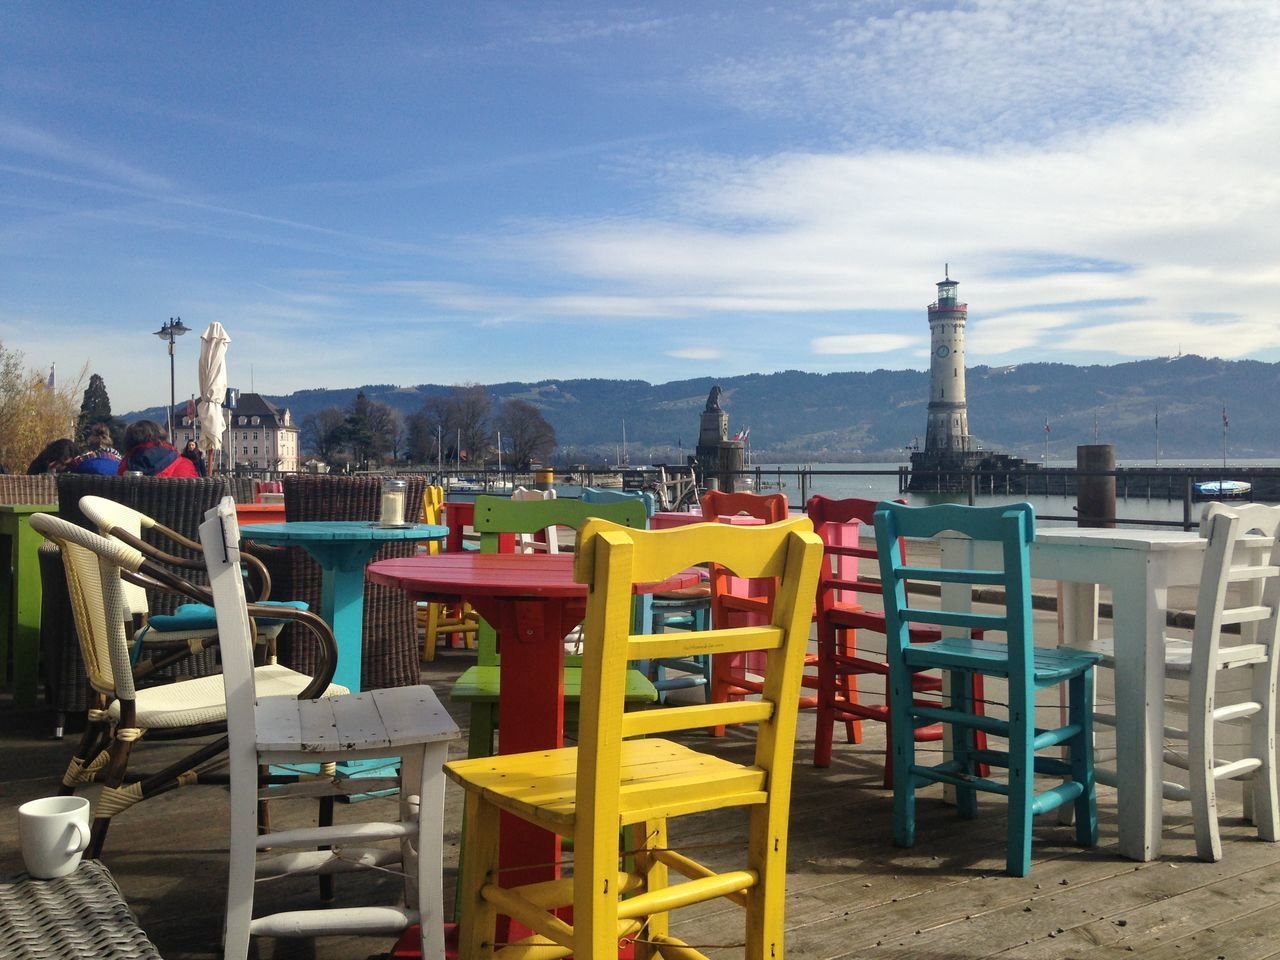 Architecture Blue Building Exterior Built Structure Chair Colorful Day Furniture Lindau Bodensee Mountain No People Outdoors Sky Sunlight Water